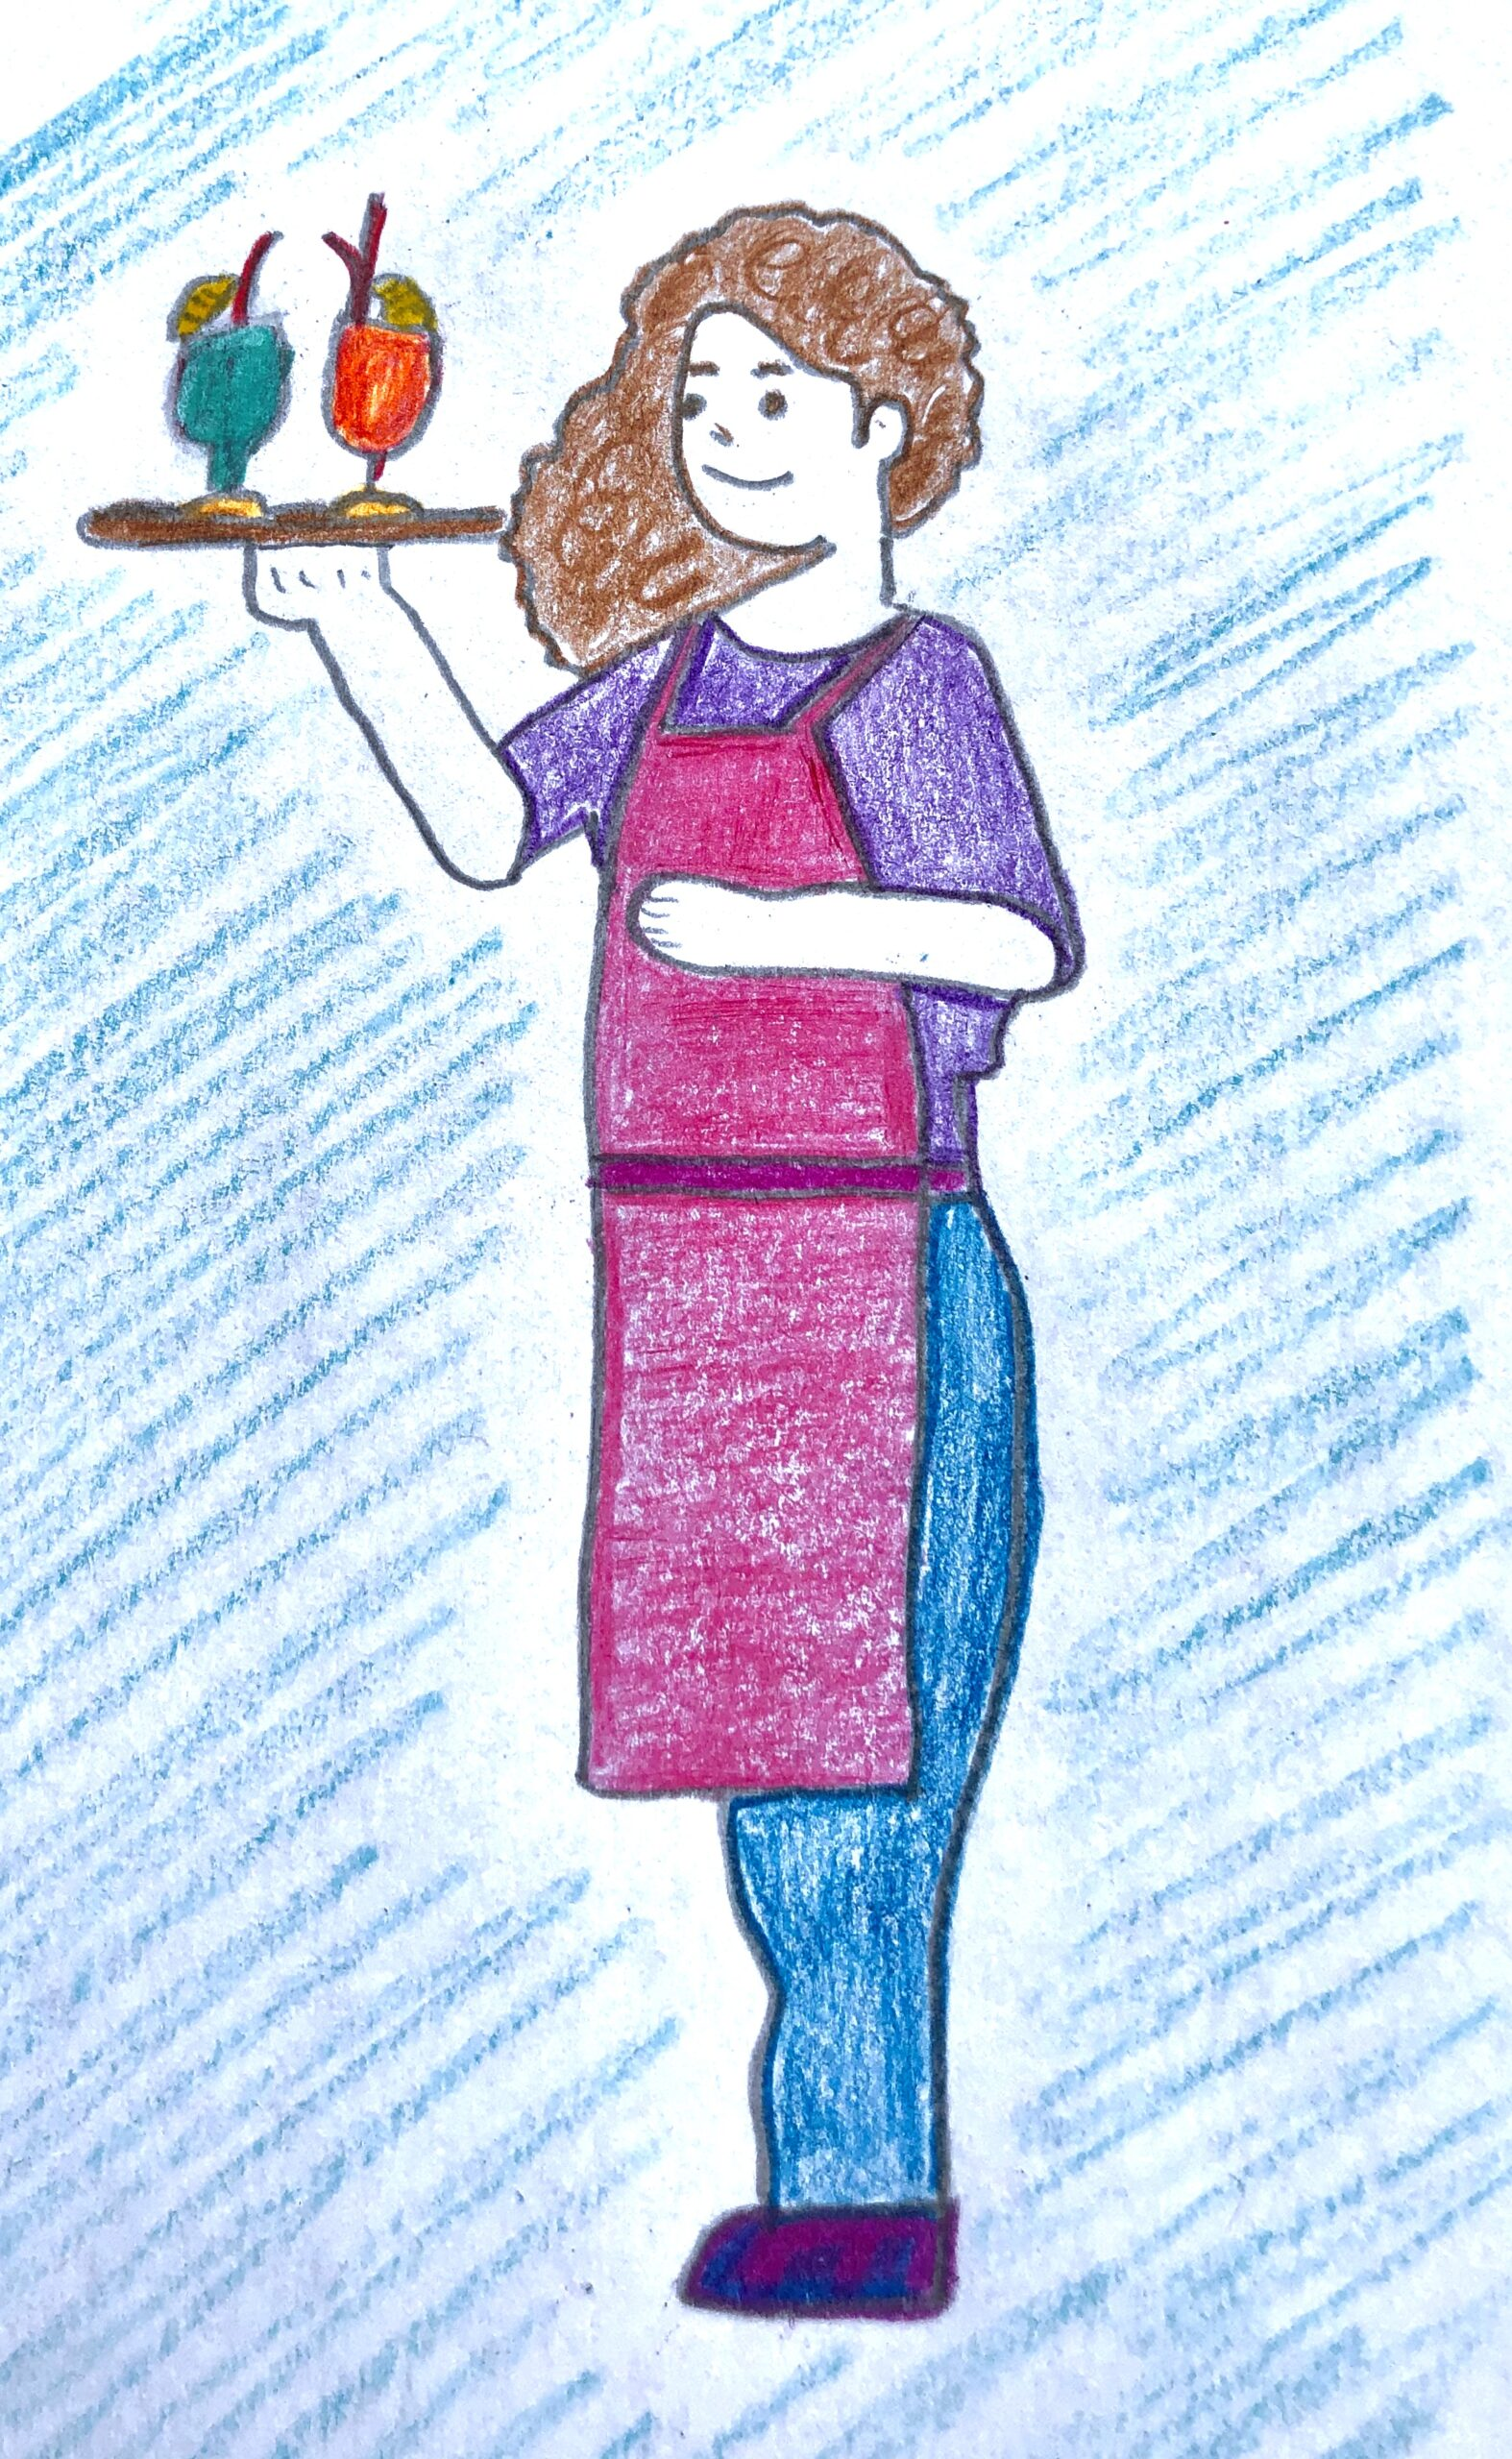 Drawing of a waitress carrying 2 fruity, colorful drinks for the mystery story.